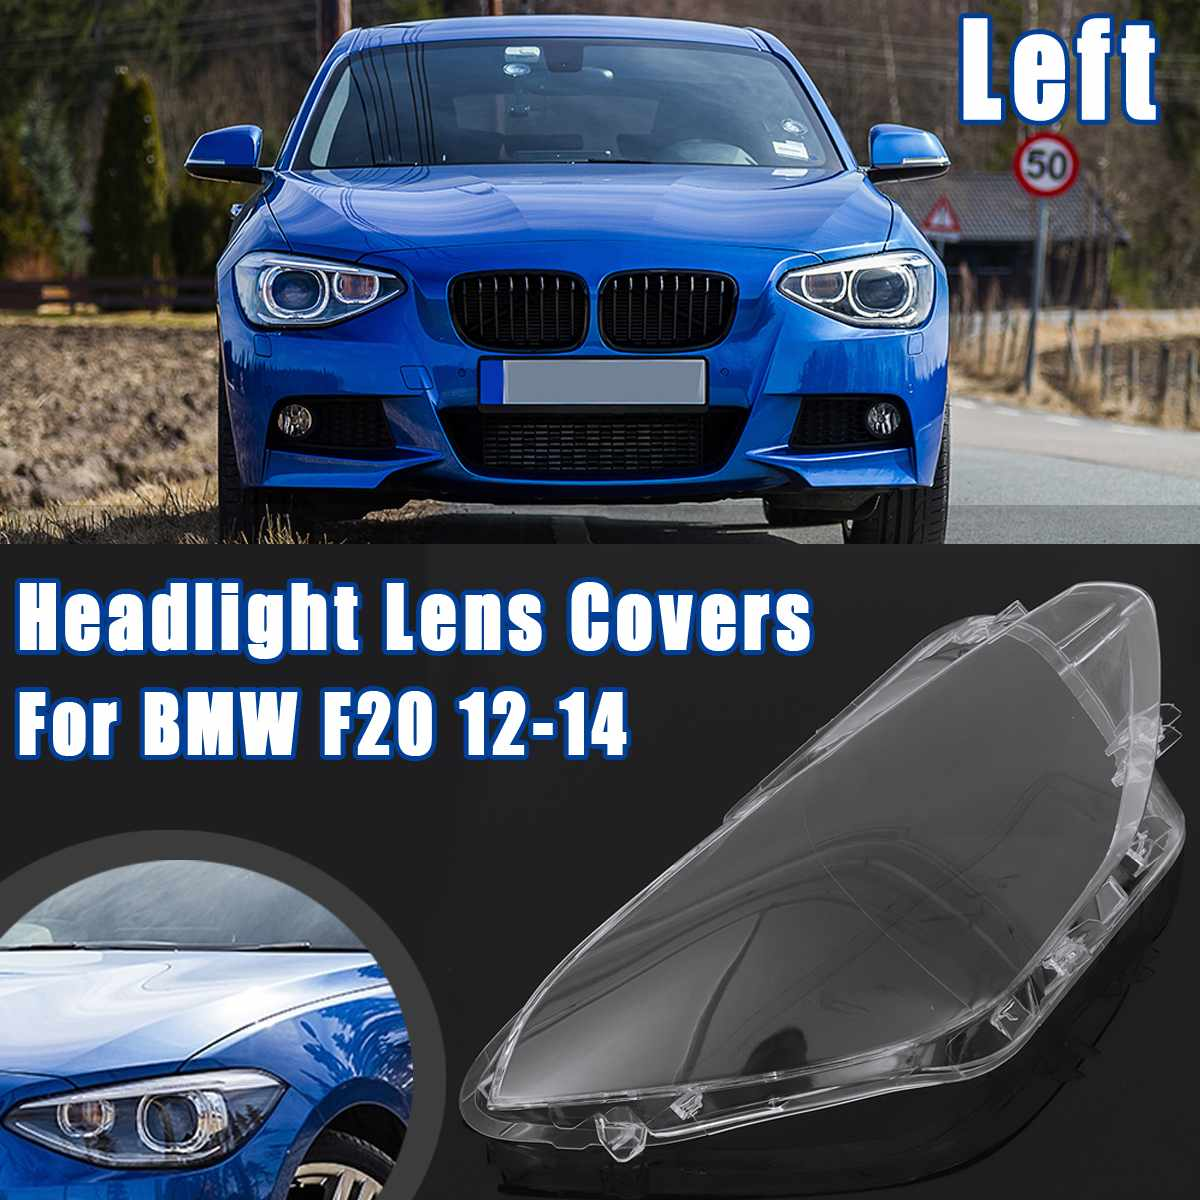 Headlight Transparent Glass Lens Cover For BMW F20 2012 2013 2014 Front Left Right Headlamp Lampshade Clear Auto Accessories image